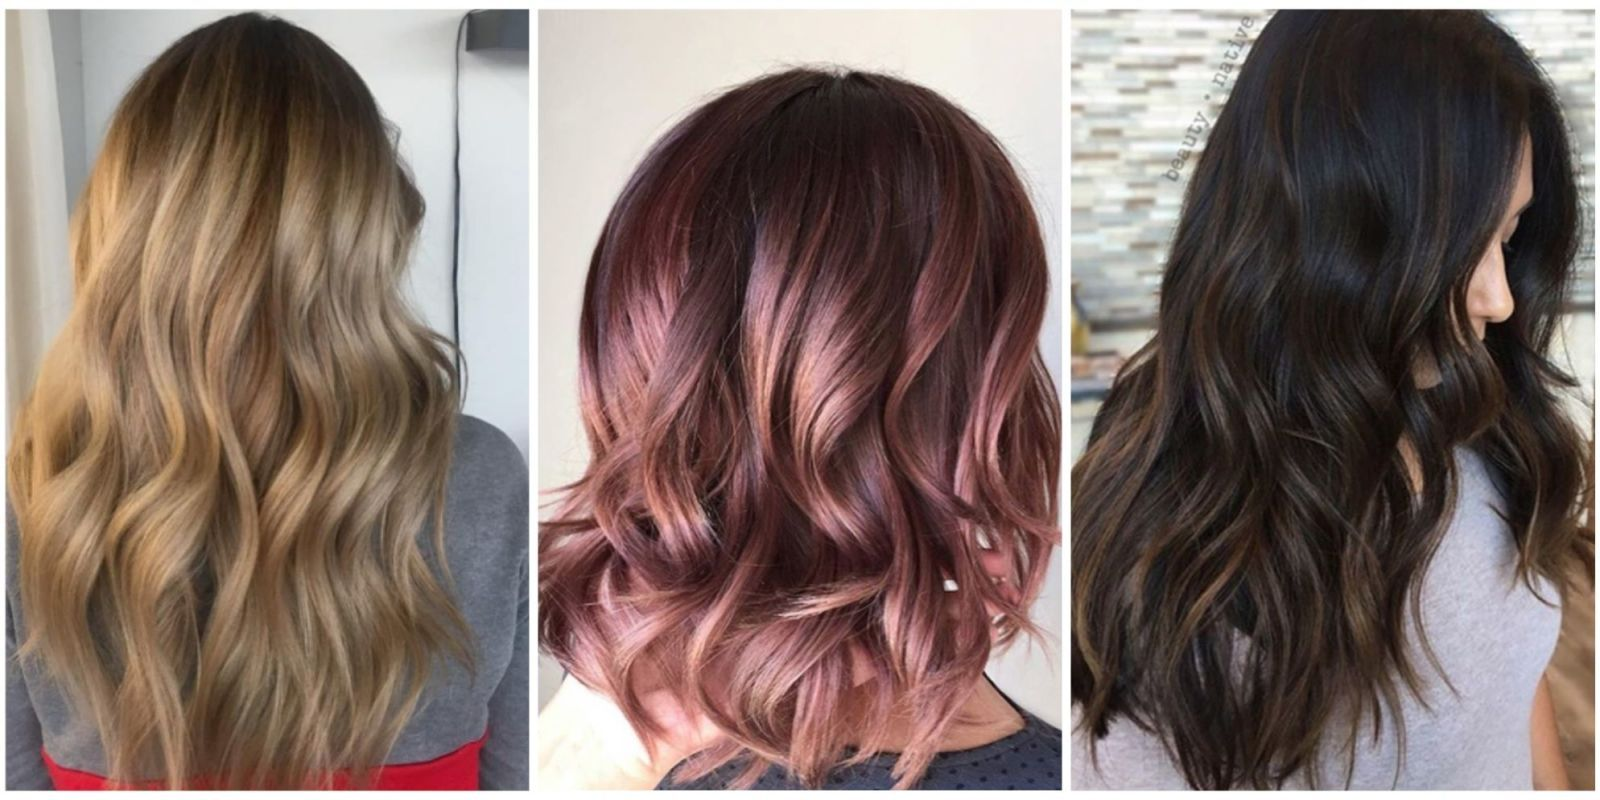 23 Best Fall Hair Colors Ideas for 2019